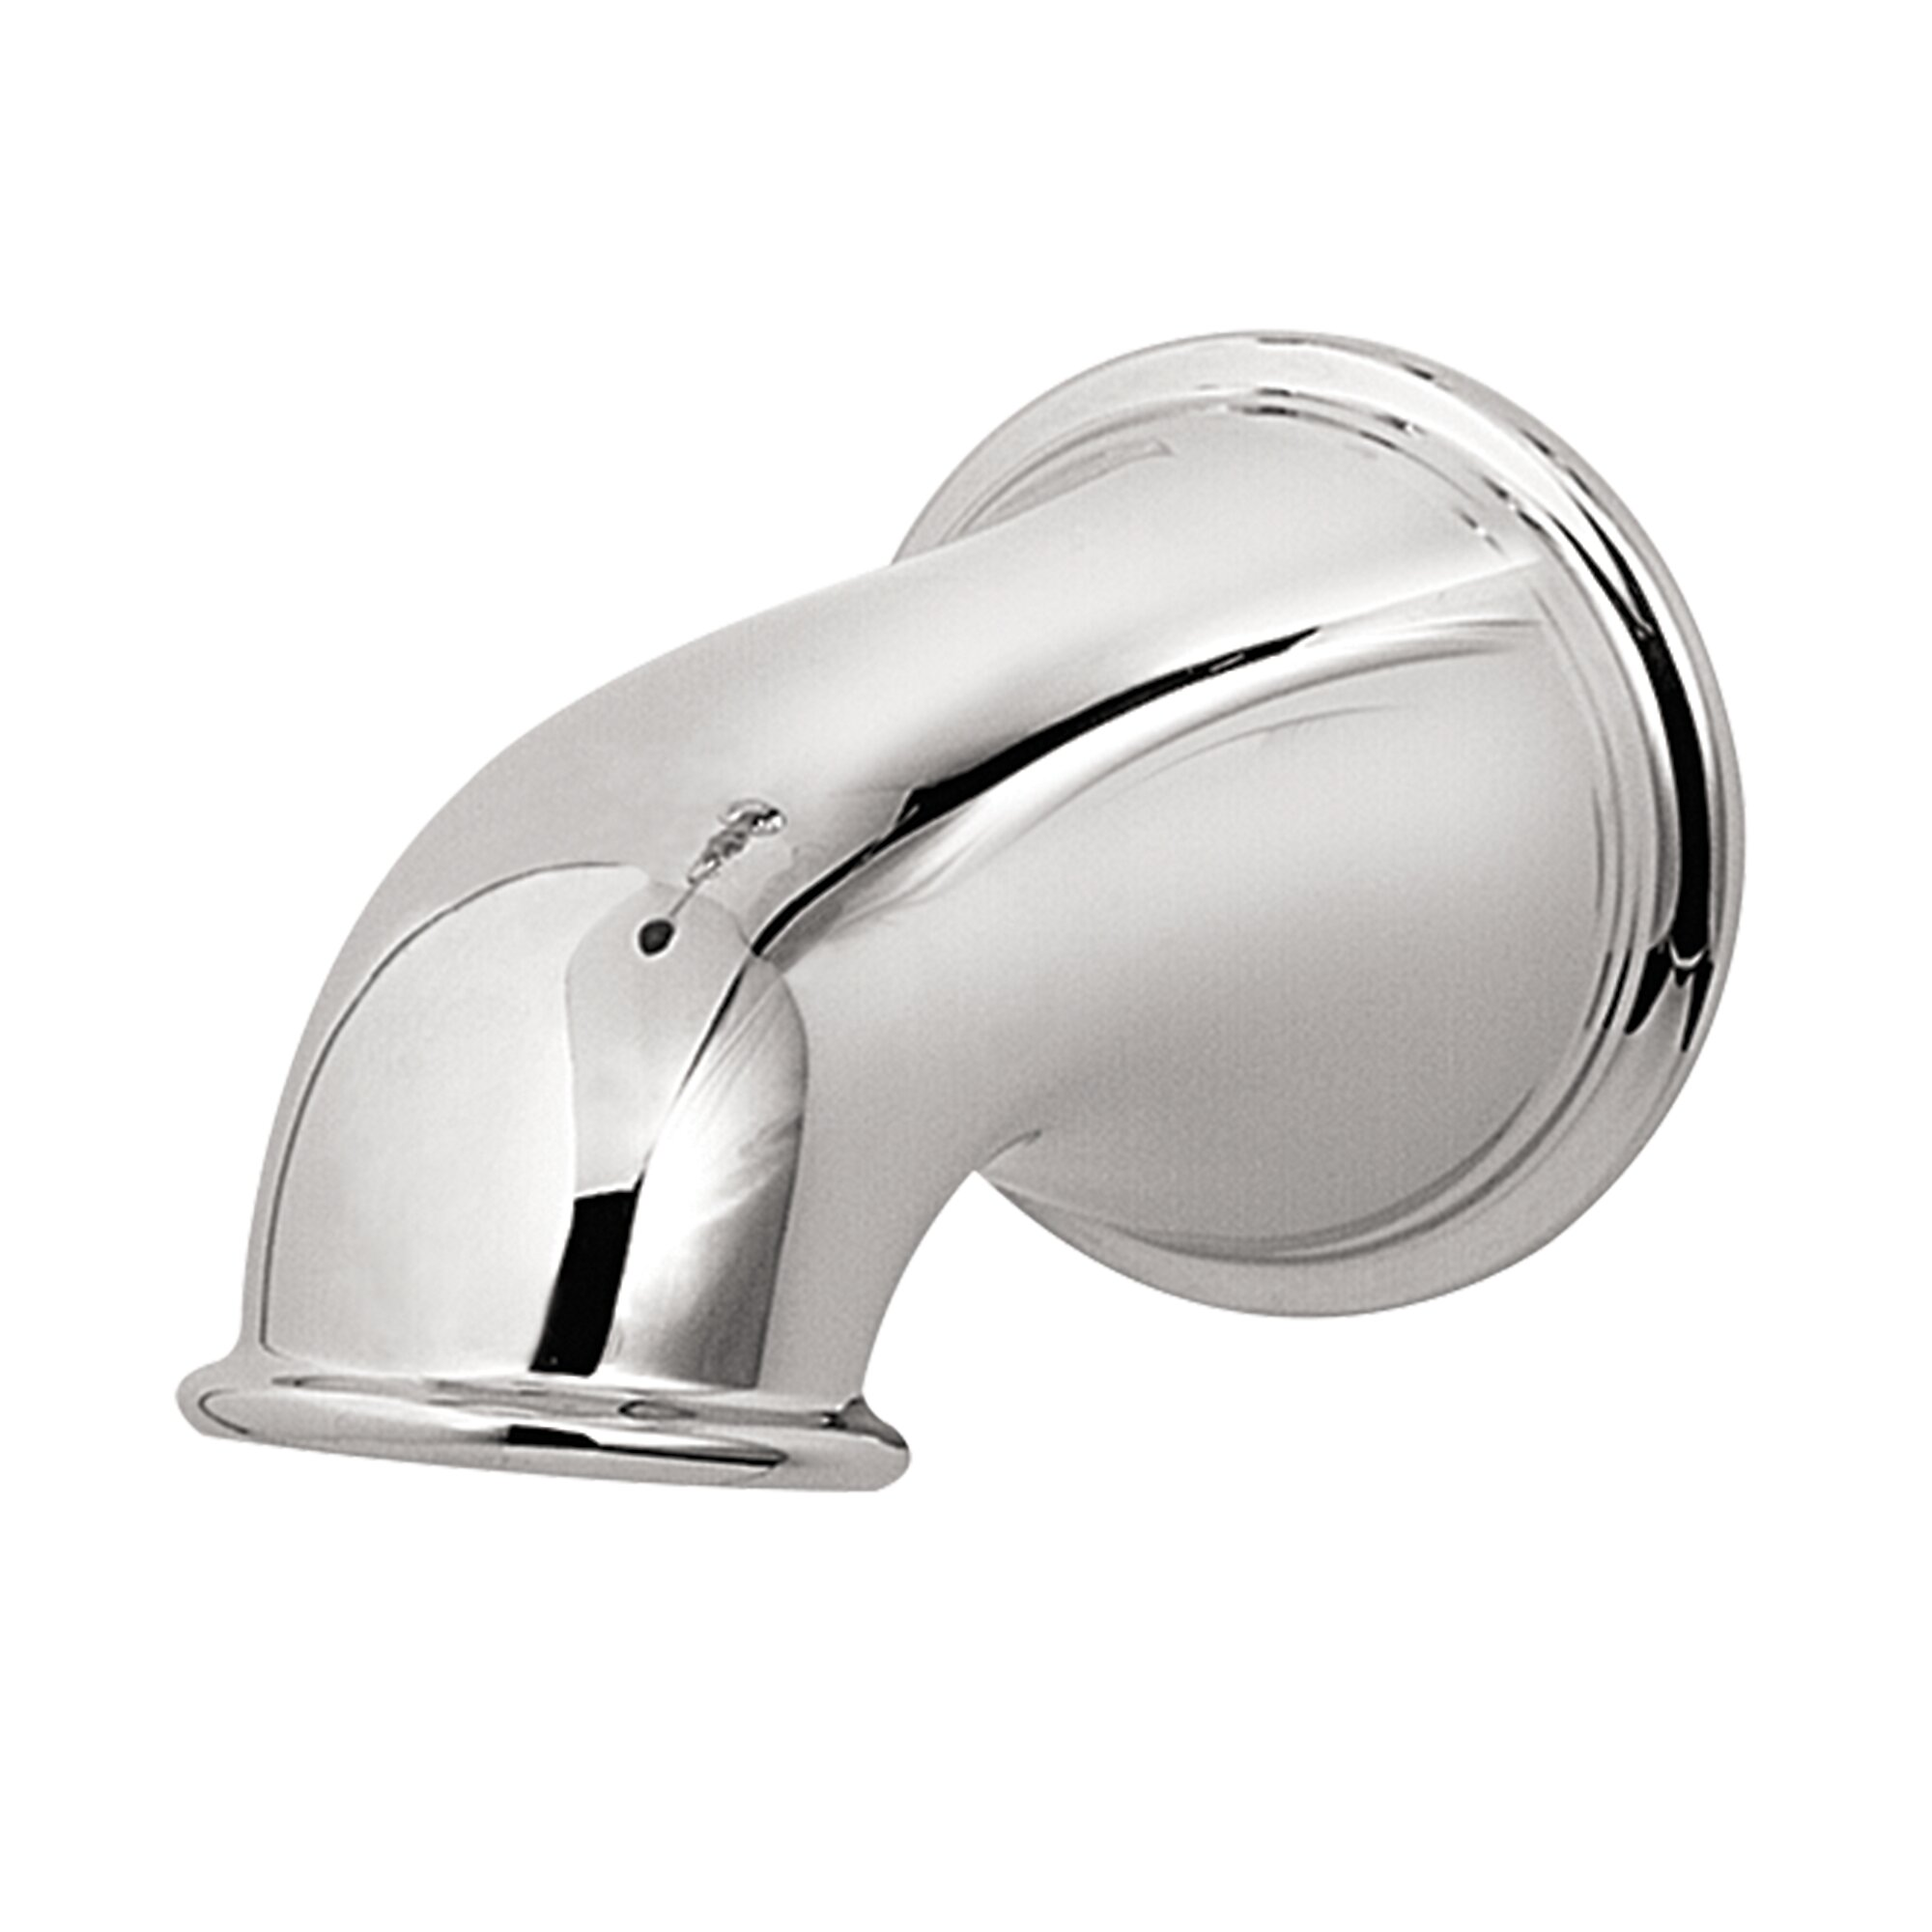 Pfister 920 022 Treviso 5 Inch Wall Mount Tub Spout Without Diverter 920 022a 920 022j 920 022y 920022a 920022j 920022y